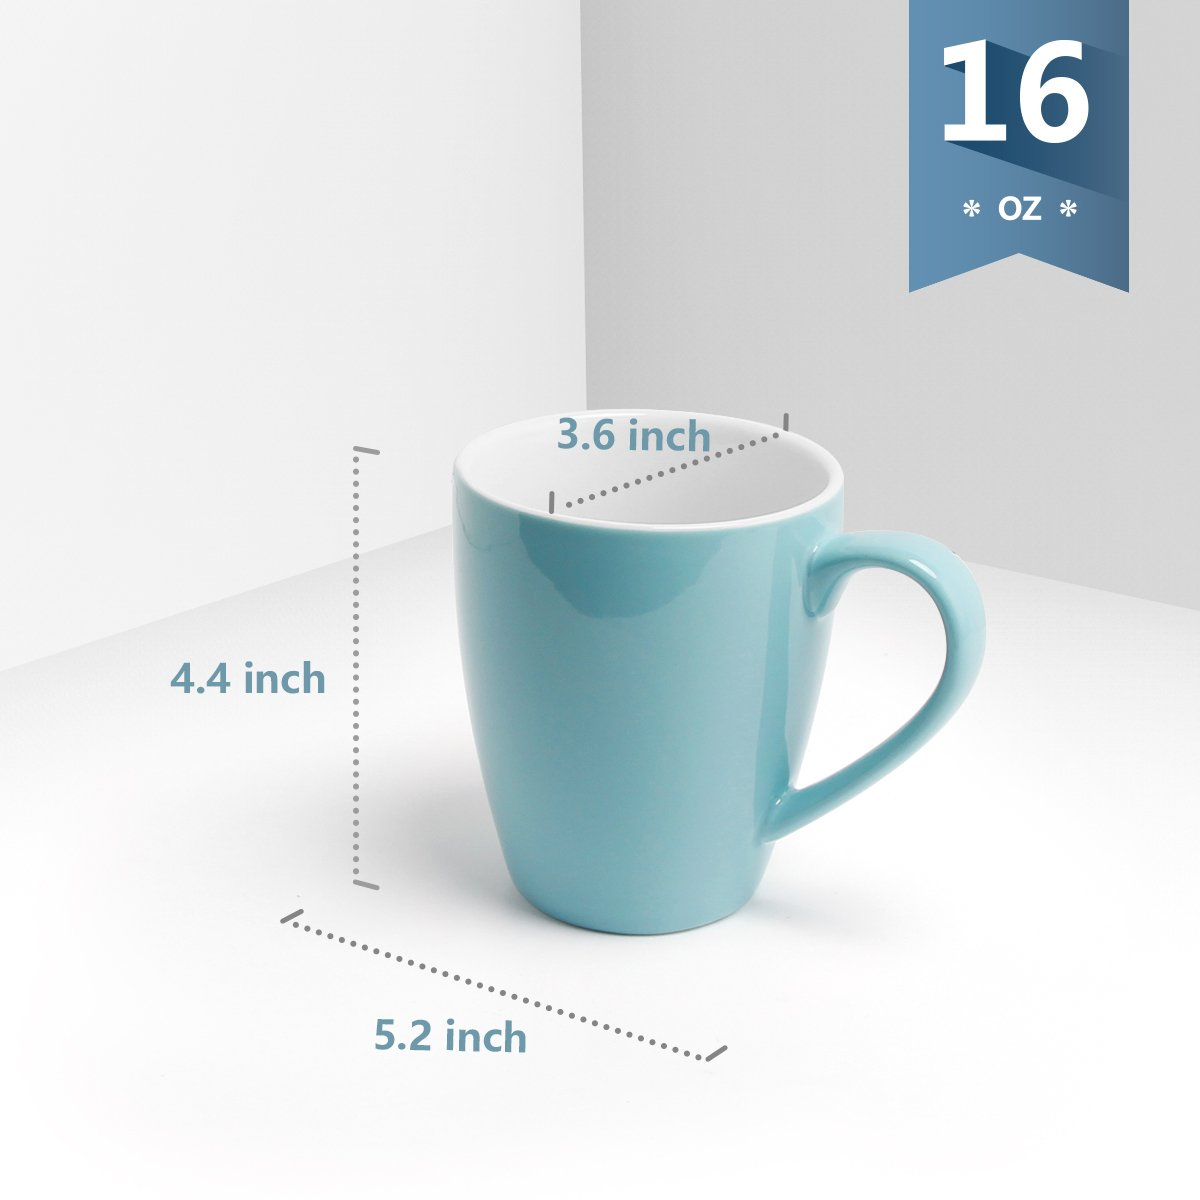 Sweese 6202 Porcelain Mugs - 16 Ounce for Coffee, Tea, Cocoa, Set of 6, Hot Assorted Colors by Sweese (Image #4)